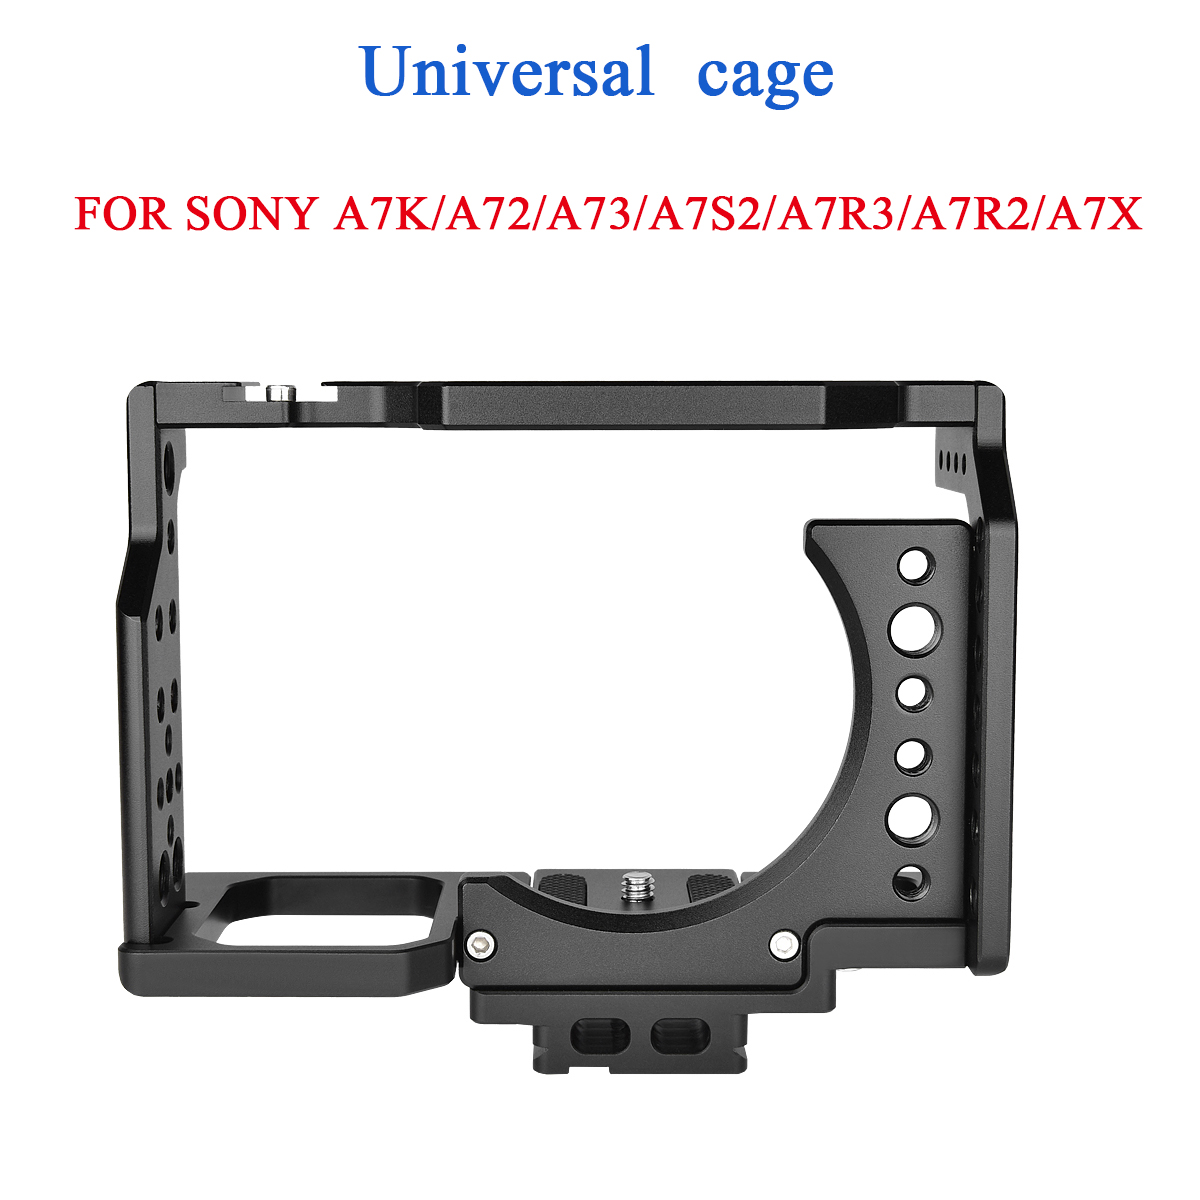 SLR Camera Rabbit Cage Universal for Sony A7 Series Movie Camera Kit Shock Absorber Photo Studio Stabilizer Portable Camera Protective Cage black